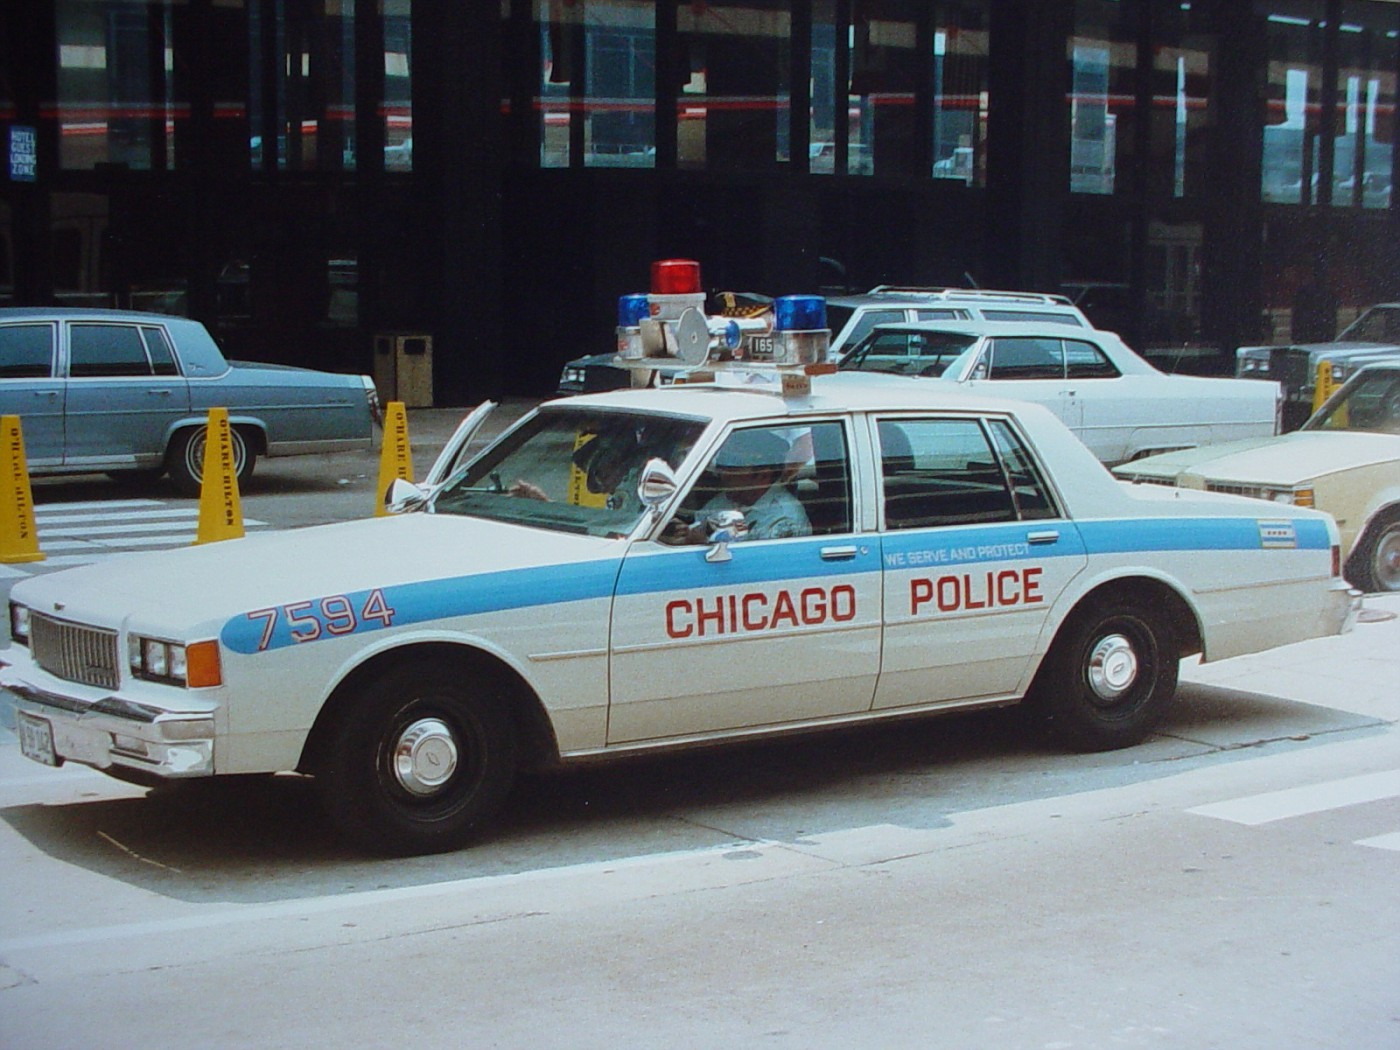 1986 Caprice O'Hare Airport car